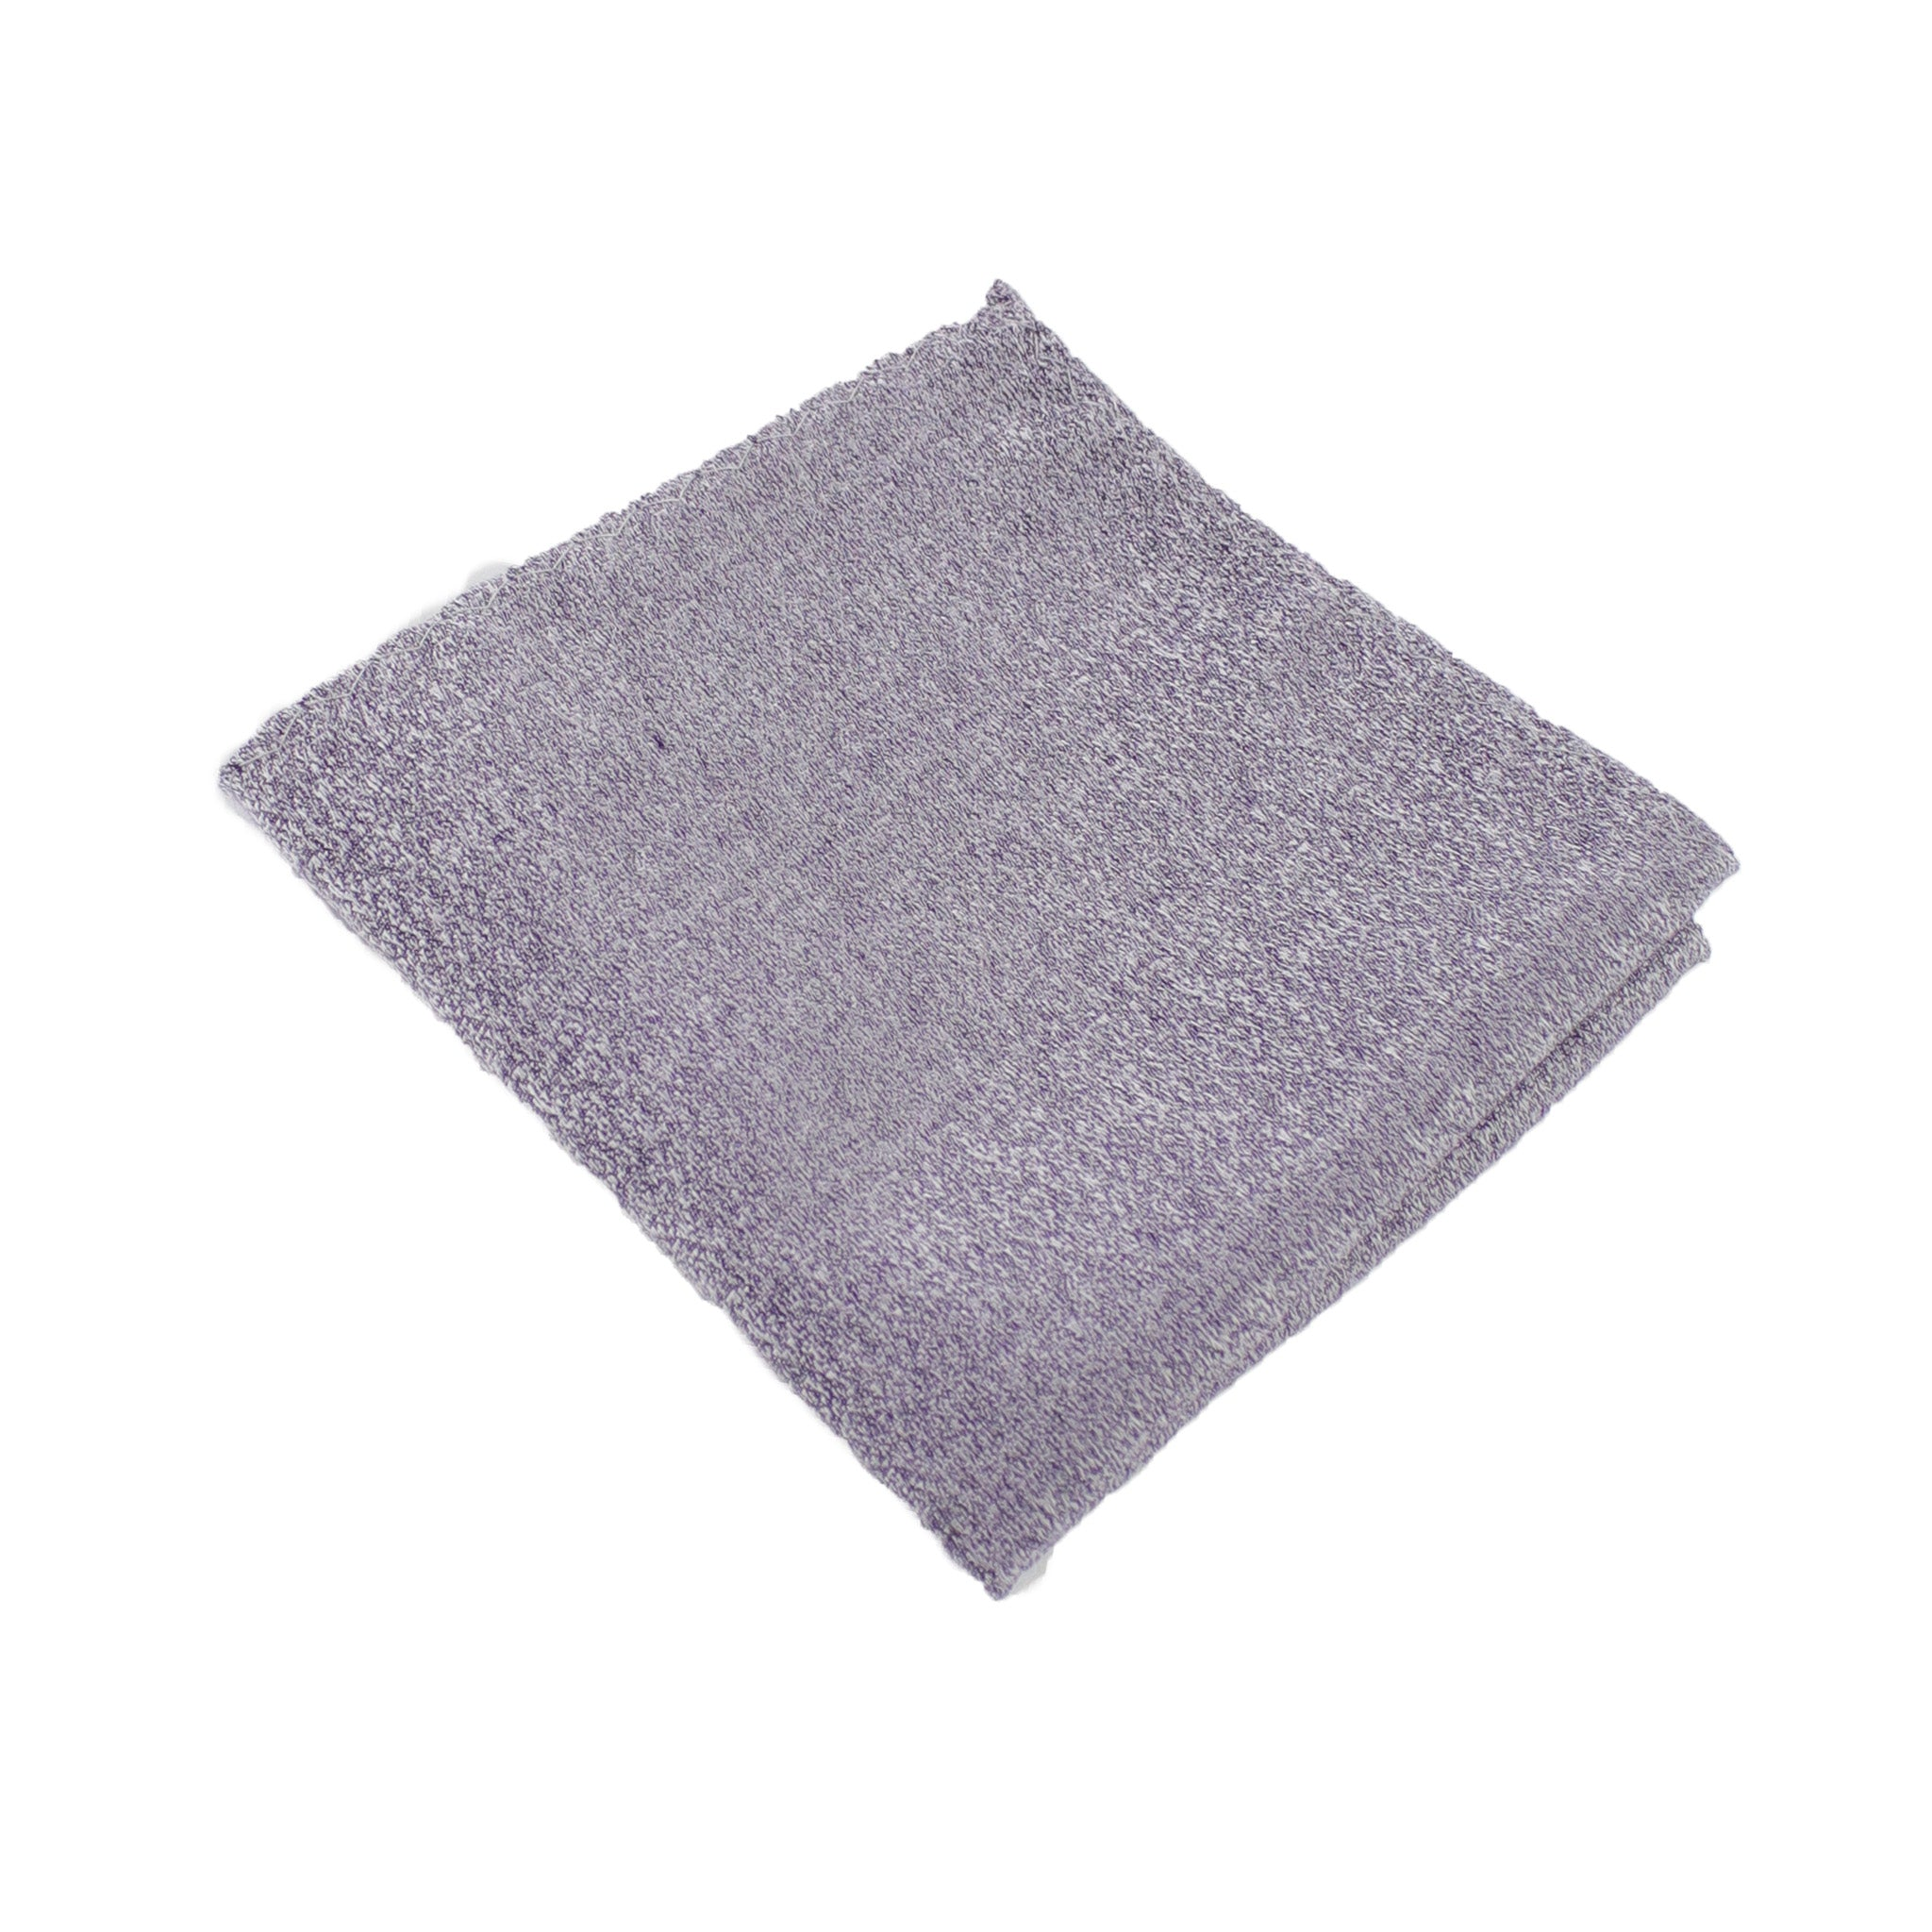 Lilac Textured Pocket Square from DIBI